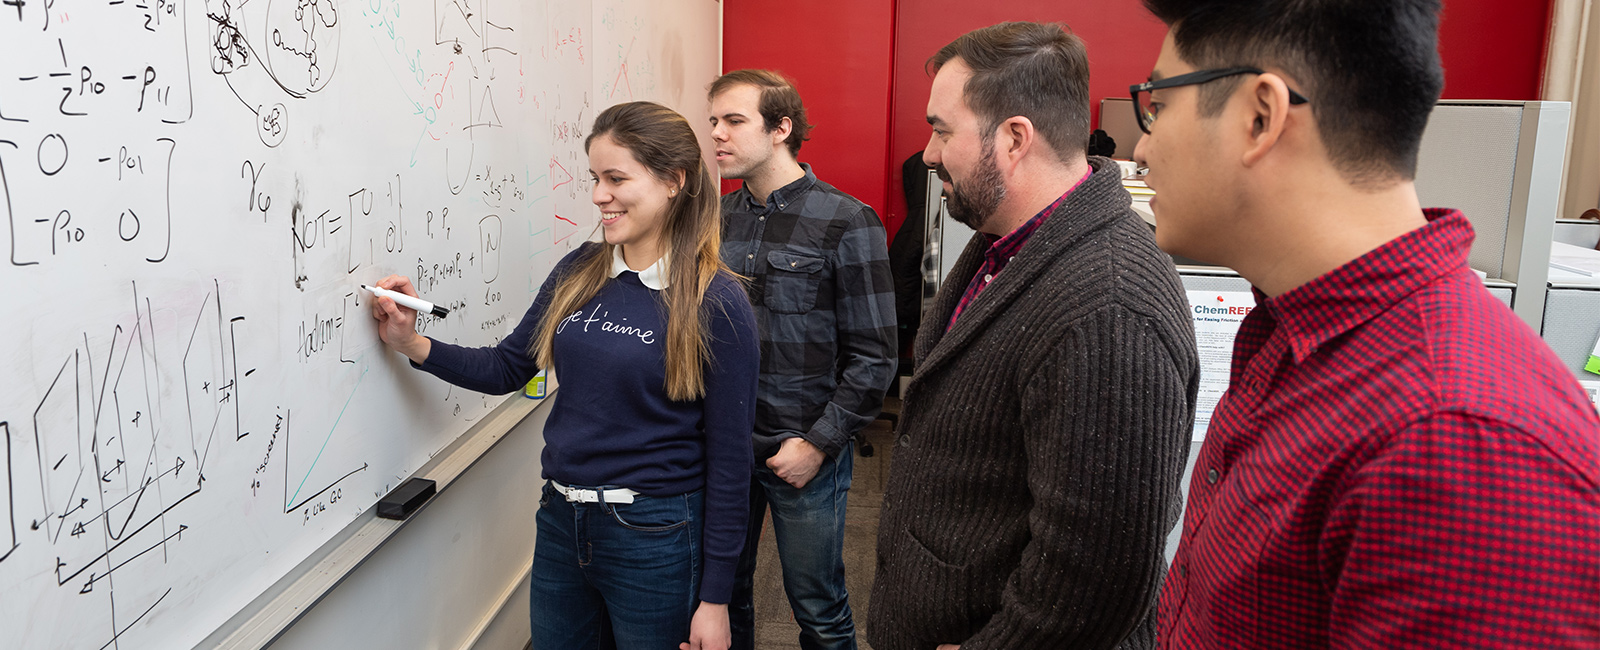 Members of the Willard Lab conduct research